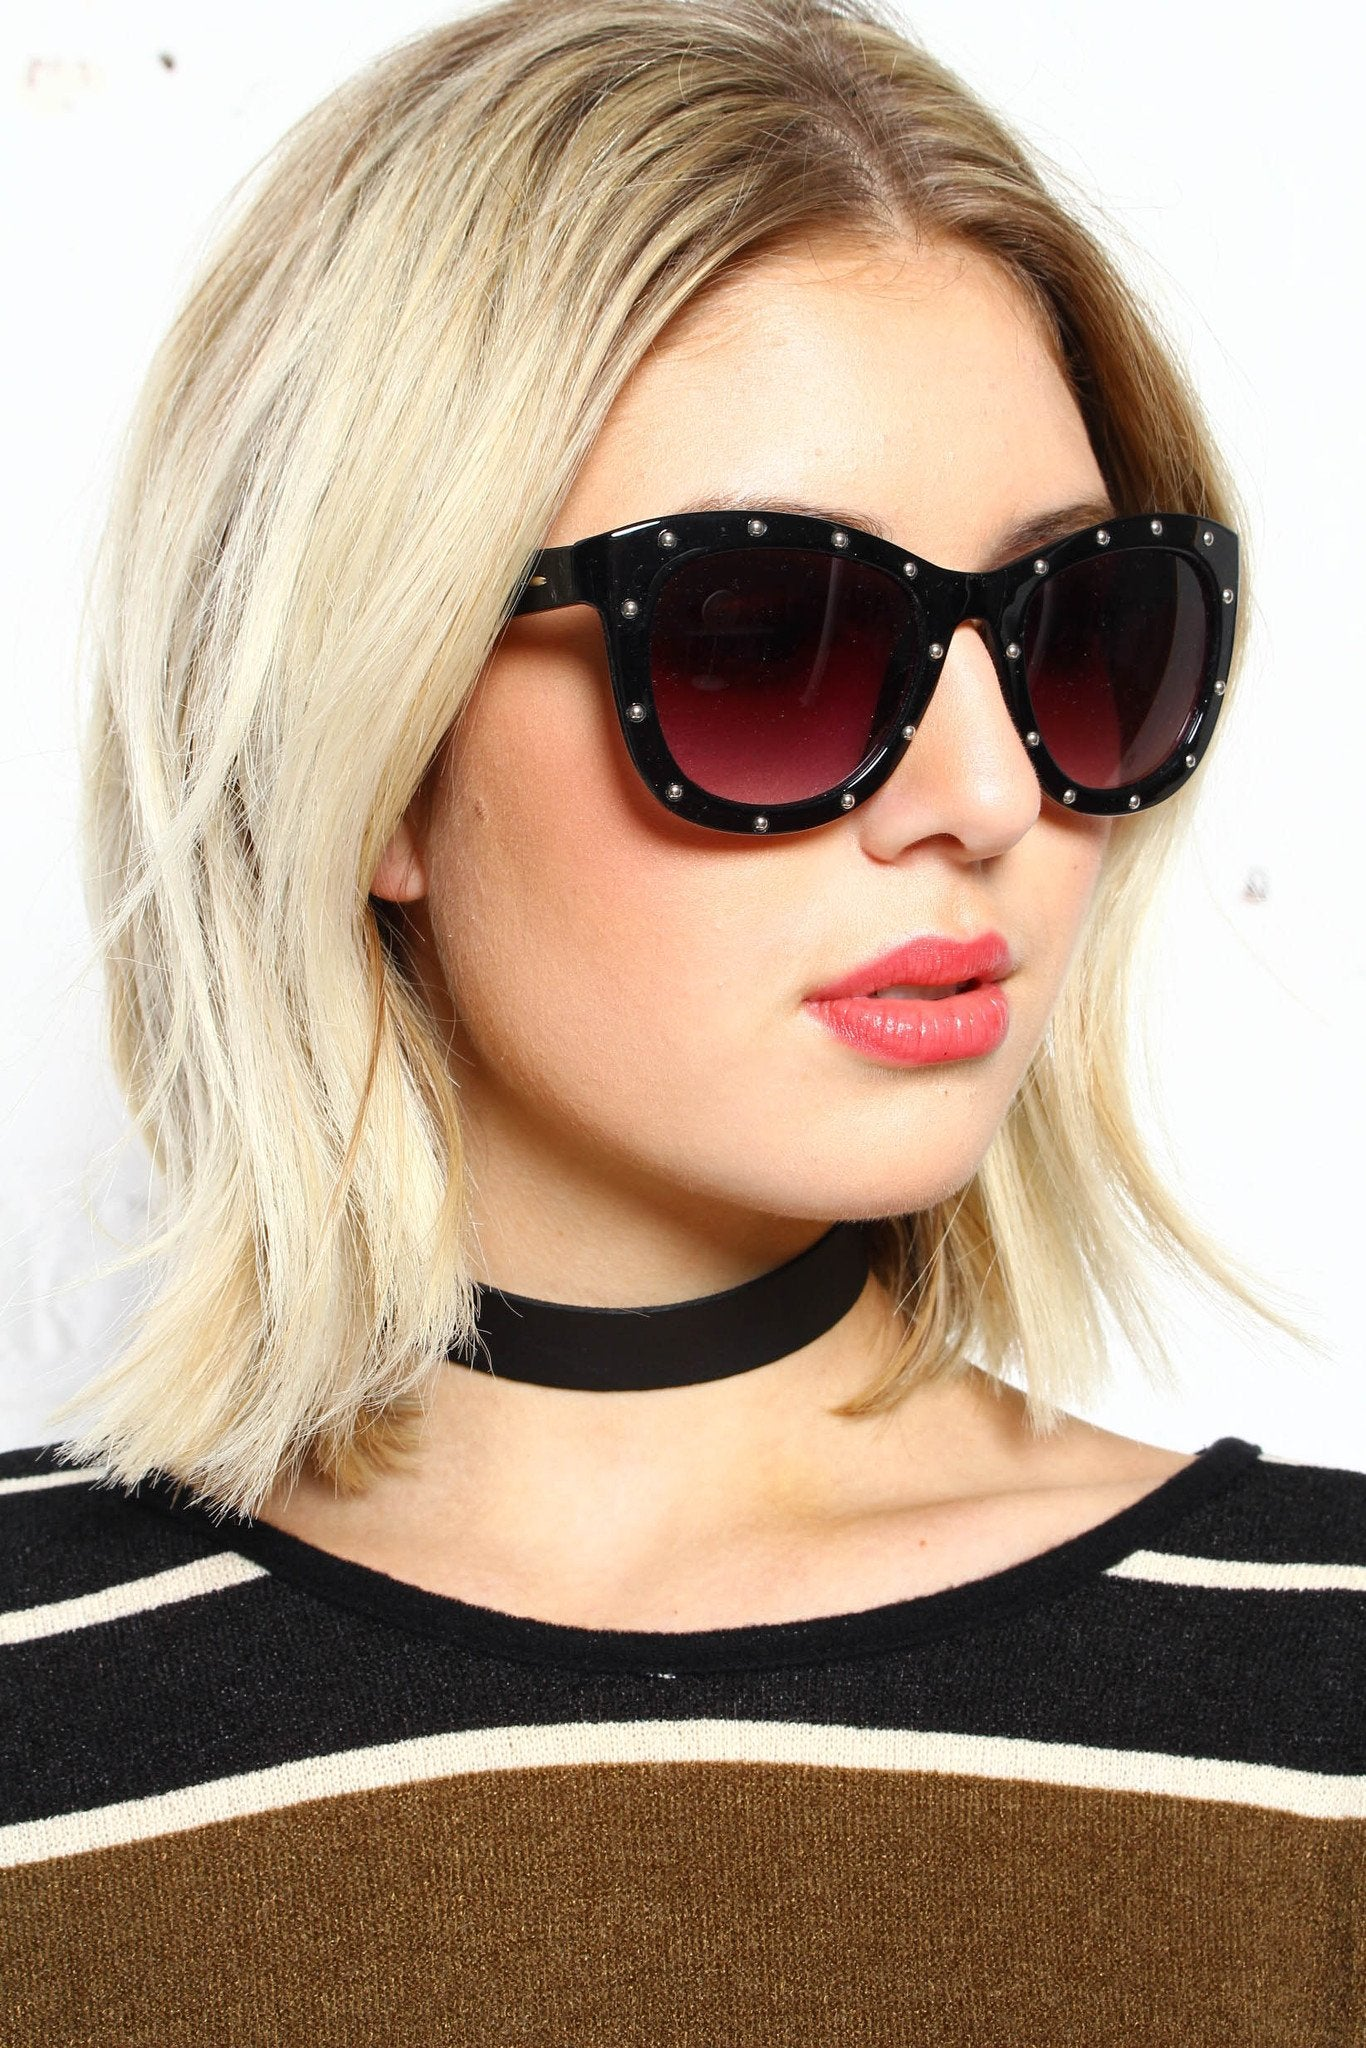 Throwing Shade Studded Sunnies